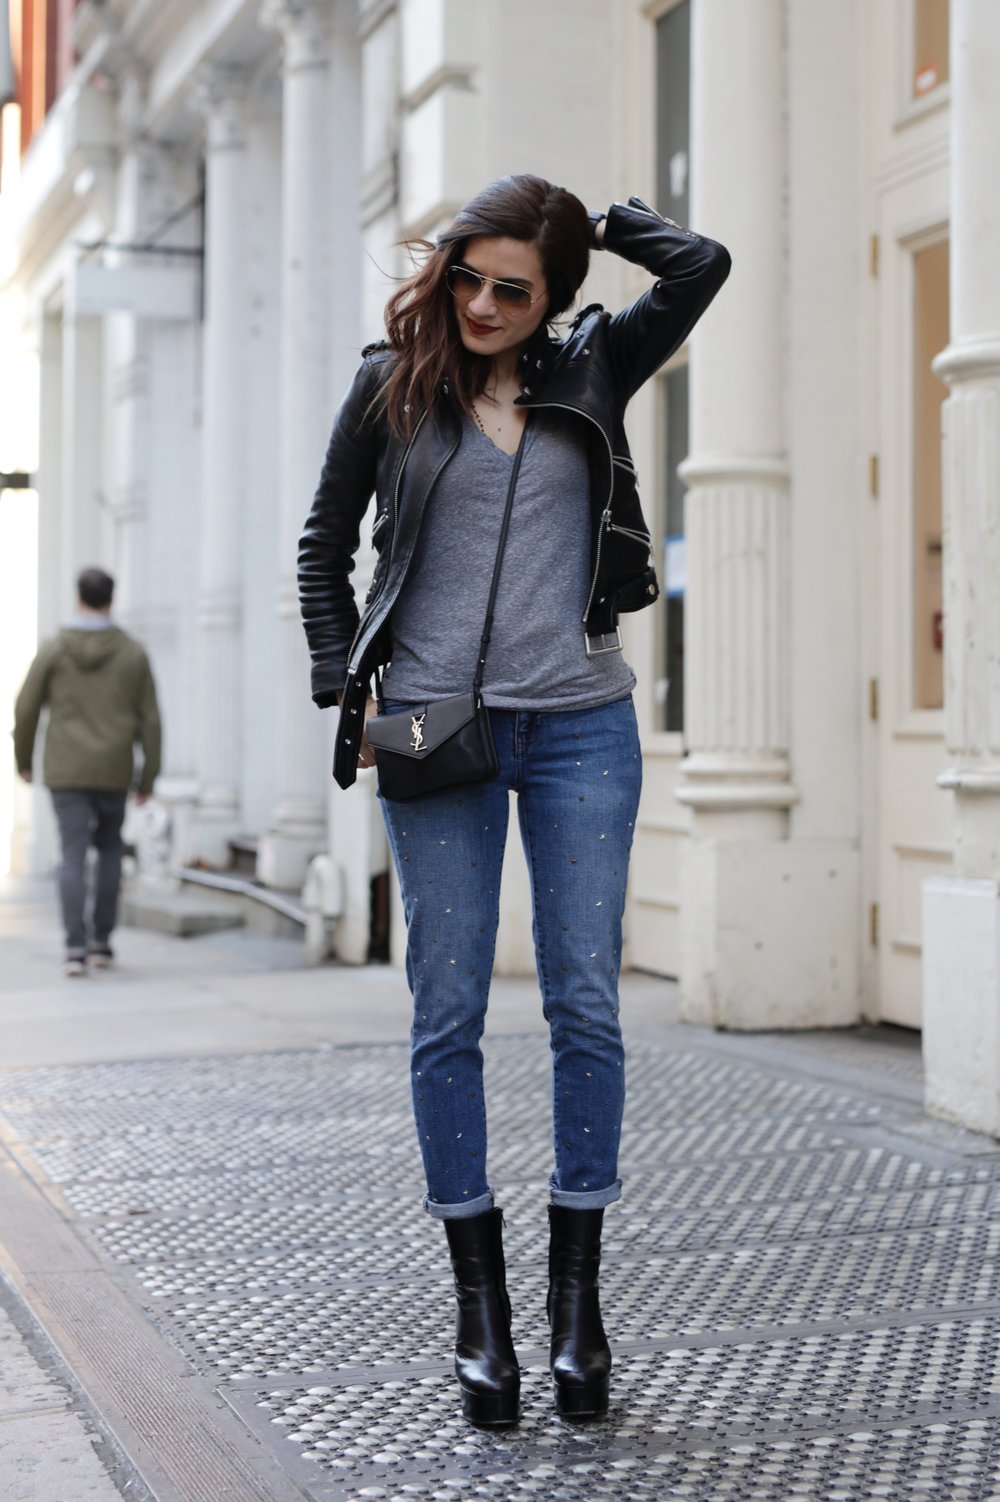 NYC street style - Saint Laurent platform boots, leather moto jacket from The Kooples, YSL cross body bag and Gap studded jeans_6956.JPG